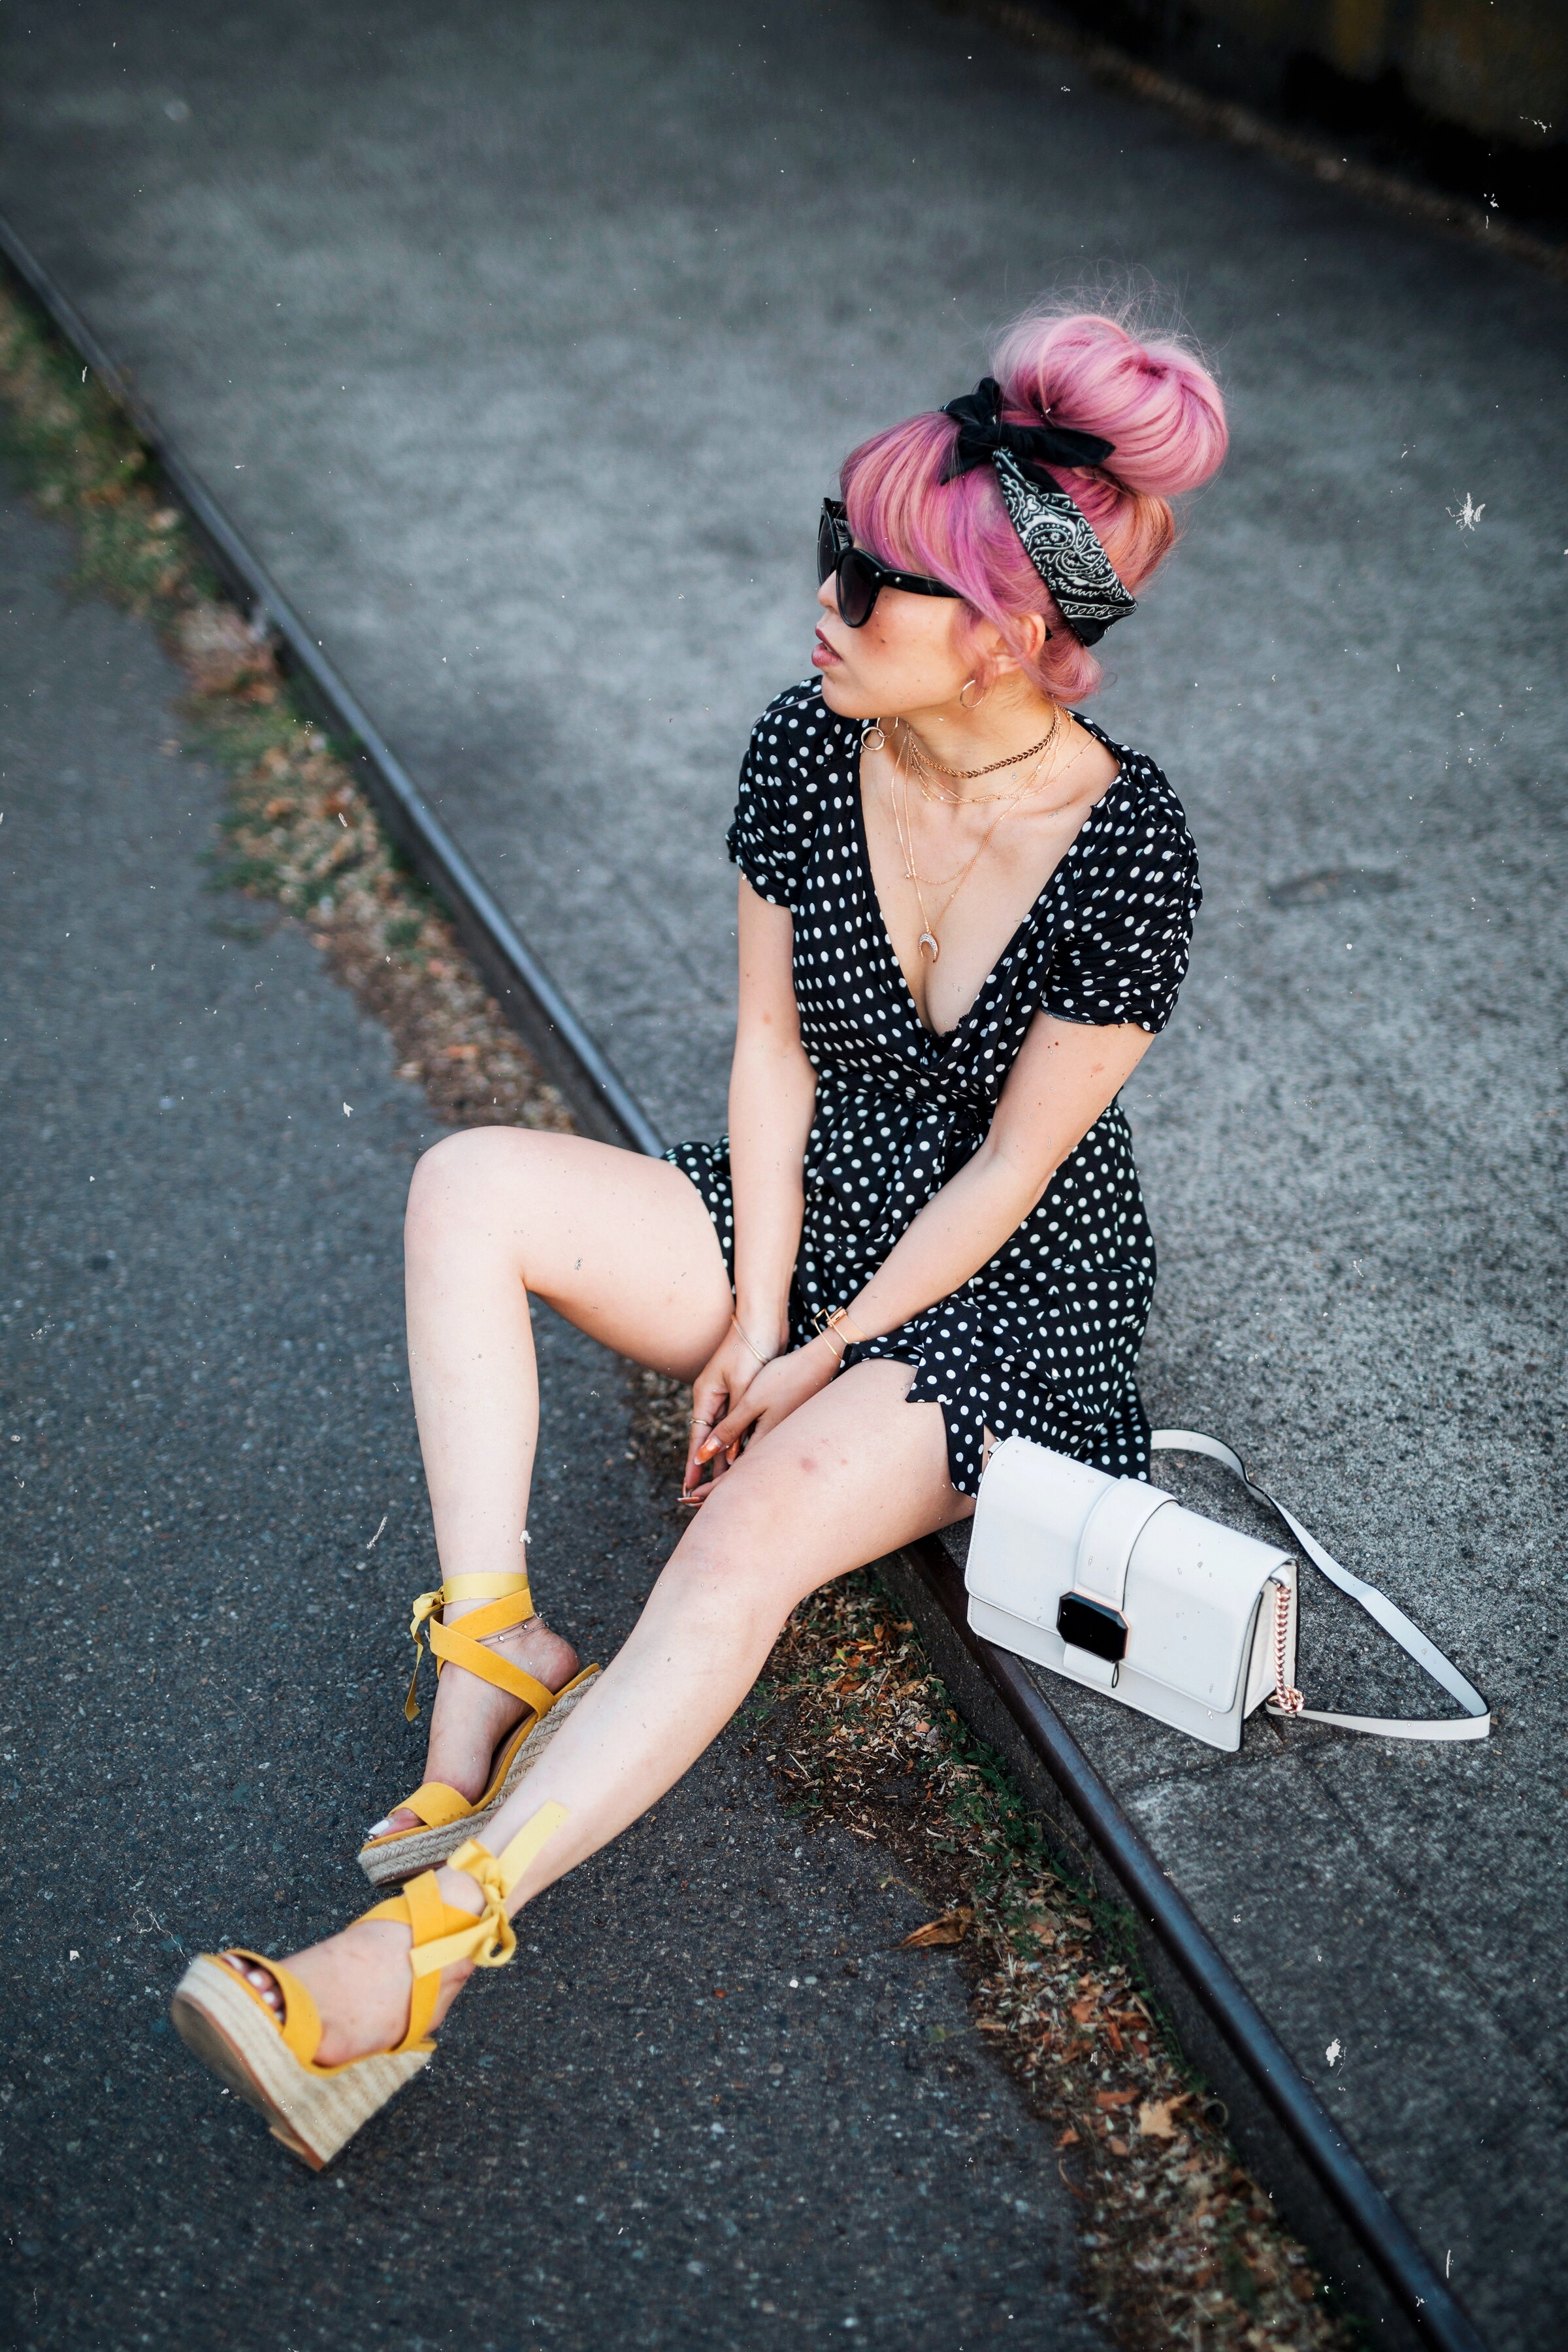 IMG_9322.JPGASOS Polkadot Romper_Urban Outfitter Bandana_Zara Statement Earrings_H&M White Crossbody Bag_ShoeDazzle Yellow Lace up Wedge Sandals_Aikas Love Closet_Seattle Fashion Style Blogger_Japanese_Pink Hair_Street Snap_Summer Style_Messy bun updo 10